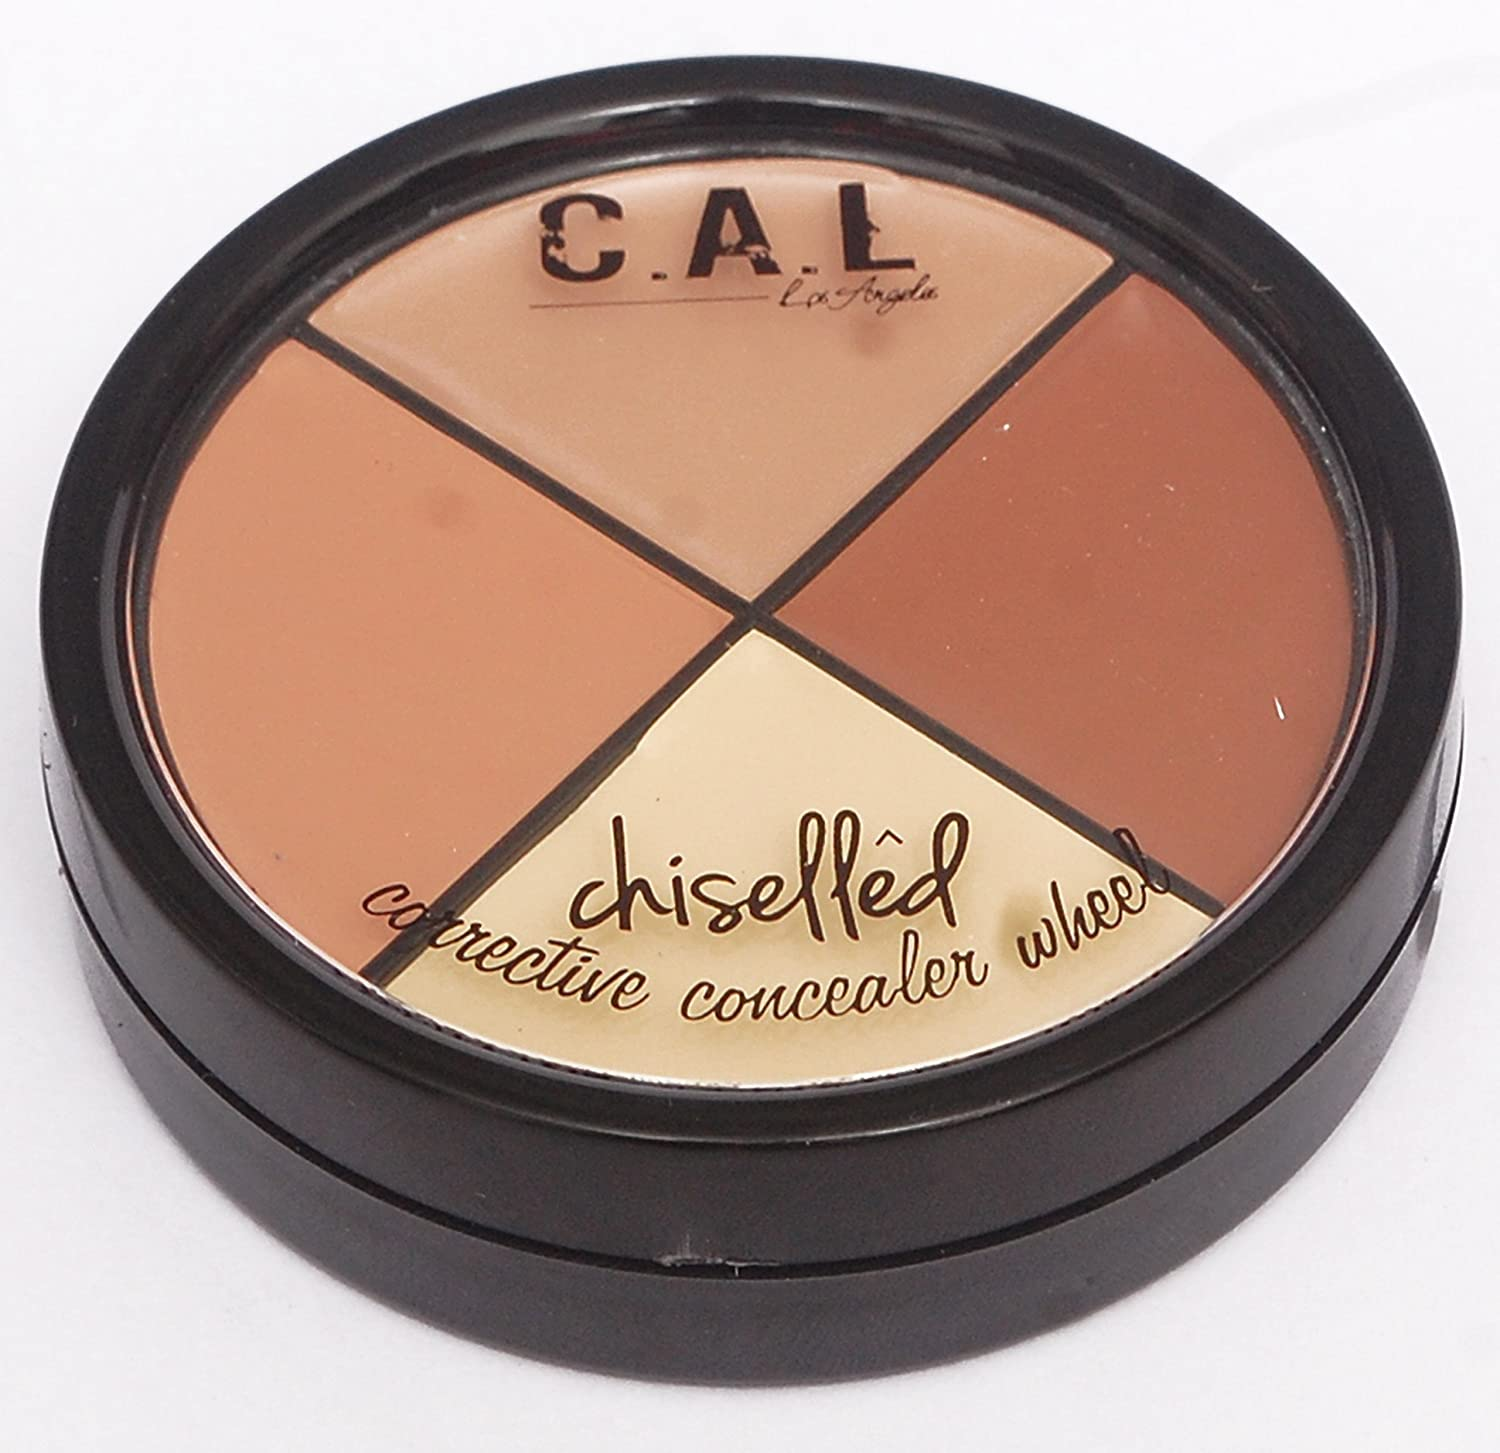 ... india with c a l los angeles chiselled contour corrective kit set 1 ...